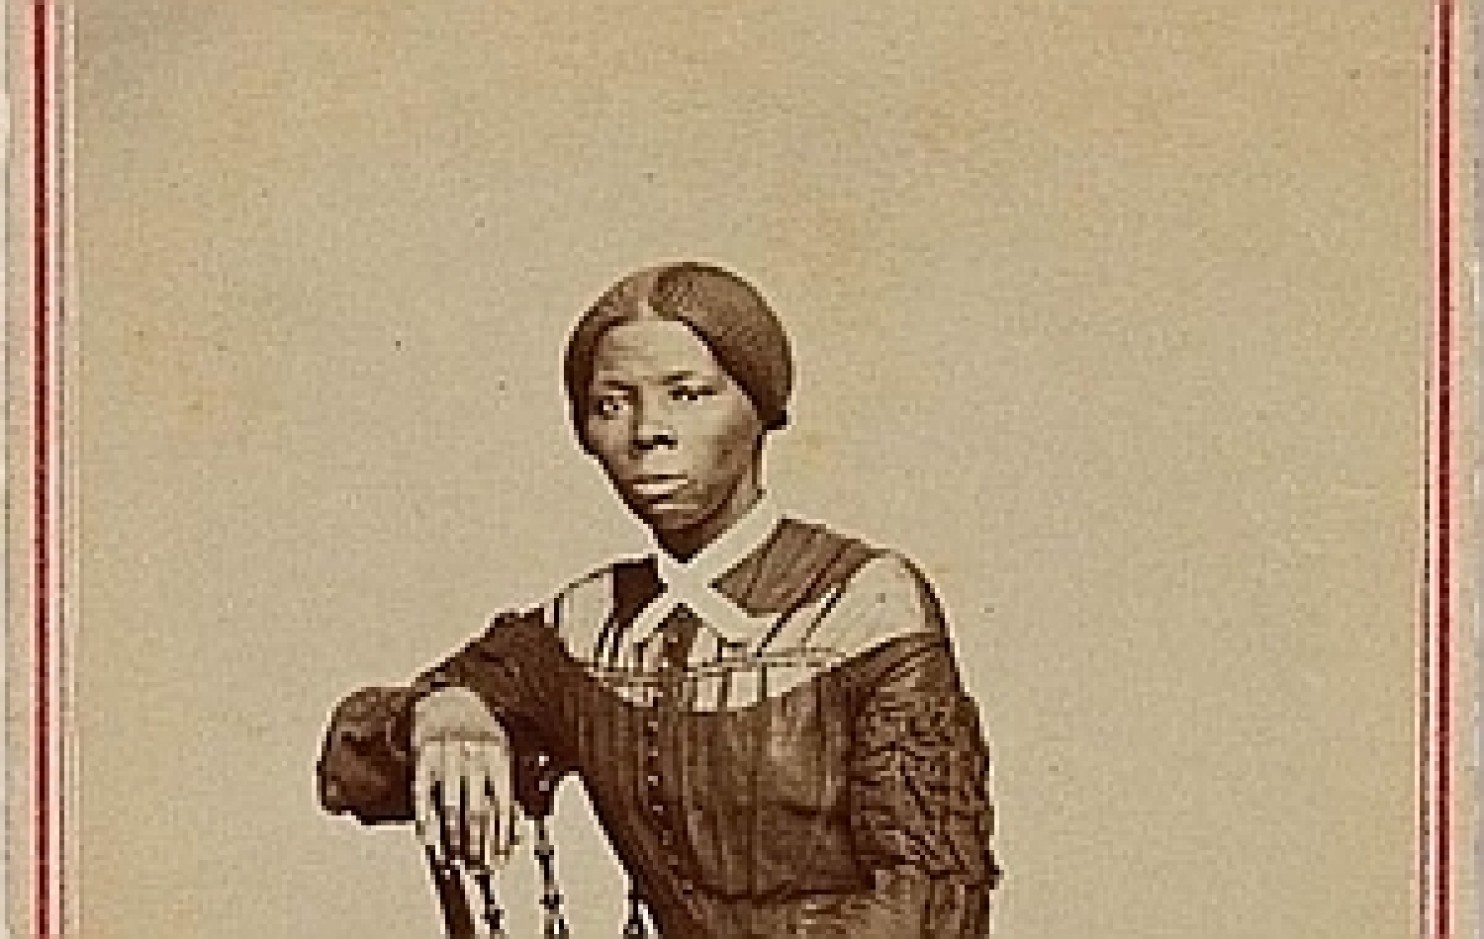 Sepia-toned photo of young Tubman leaning arm on chair